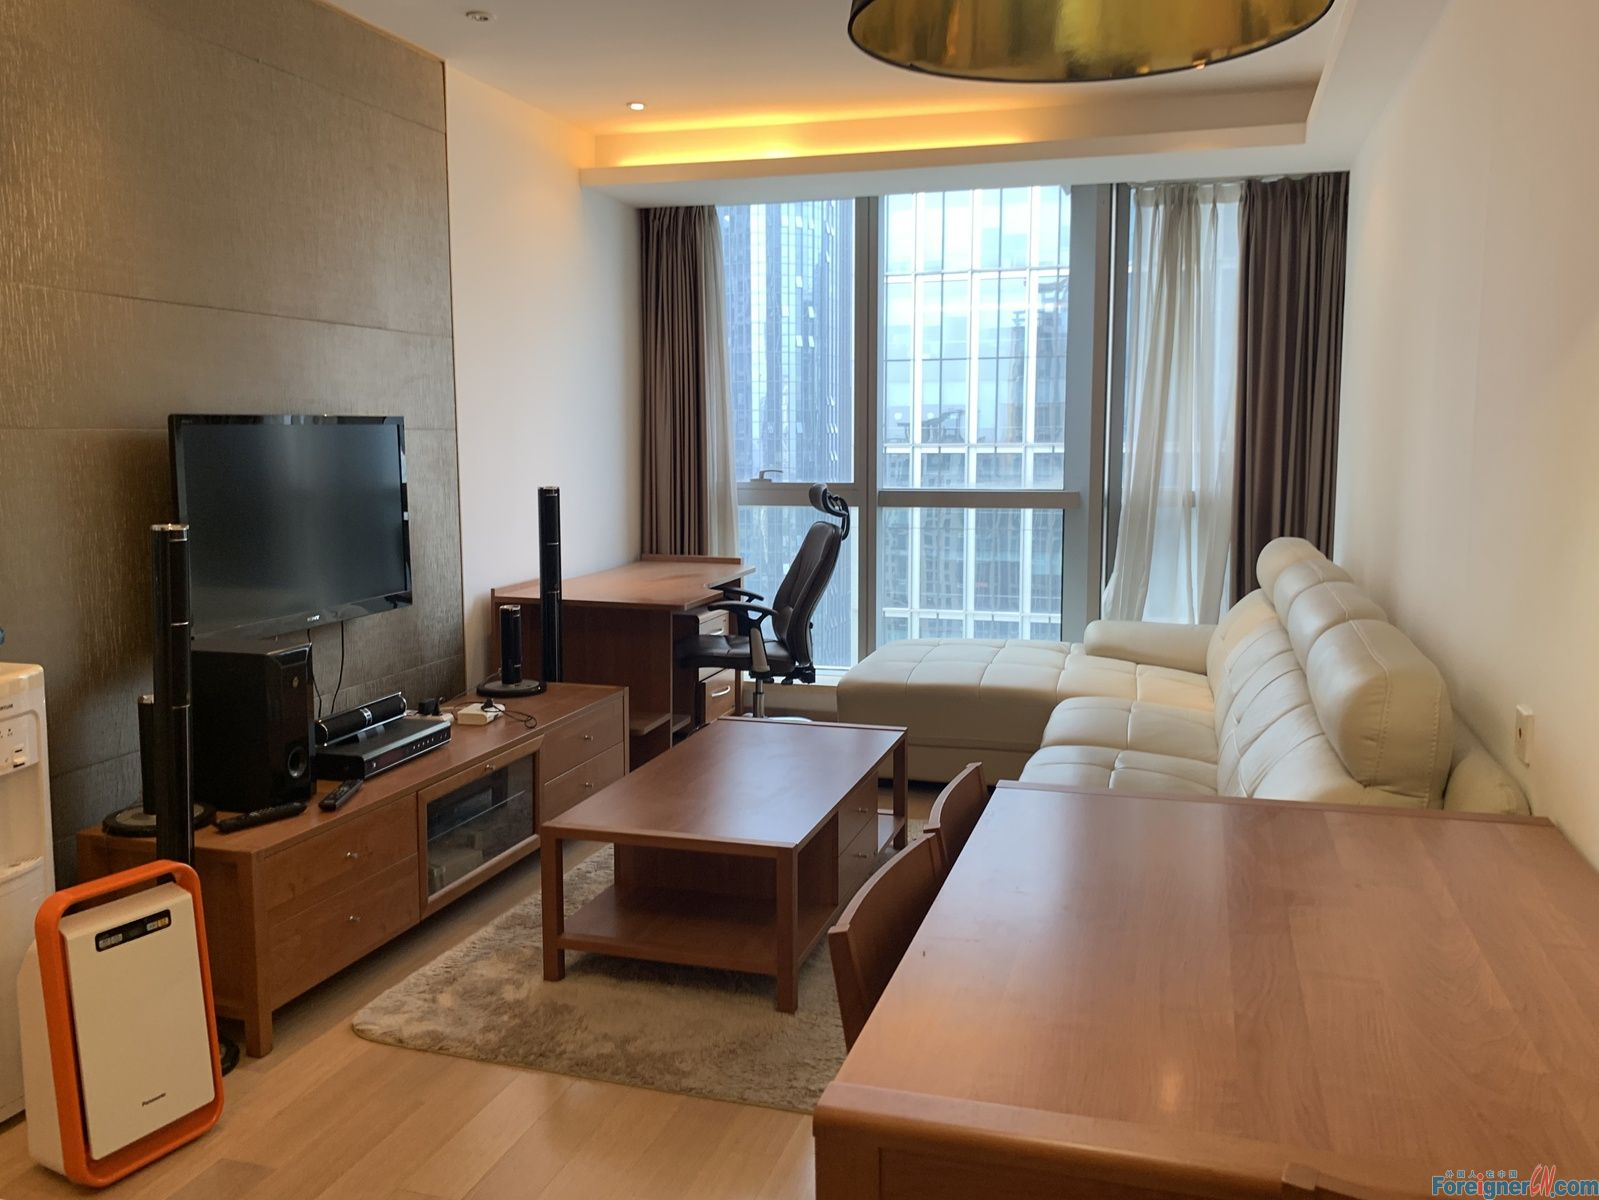 Global 188 2br for rent, SIP, SUZHOU CENTER, XingHai Square metro station